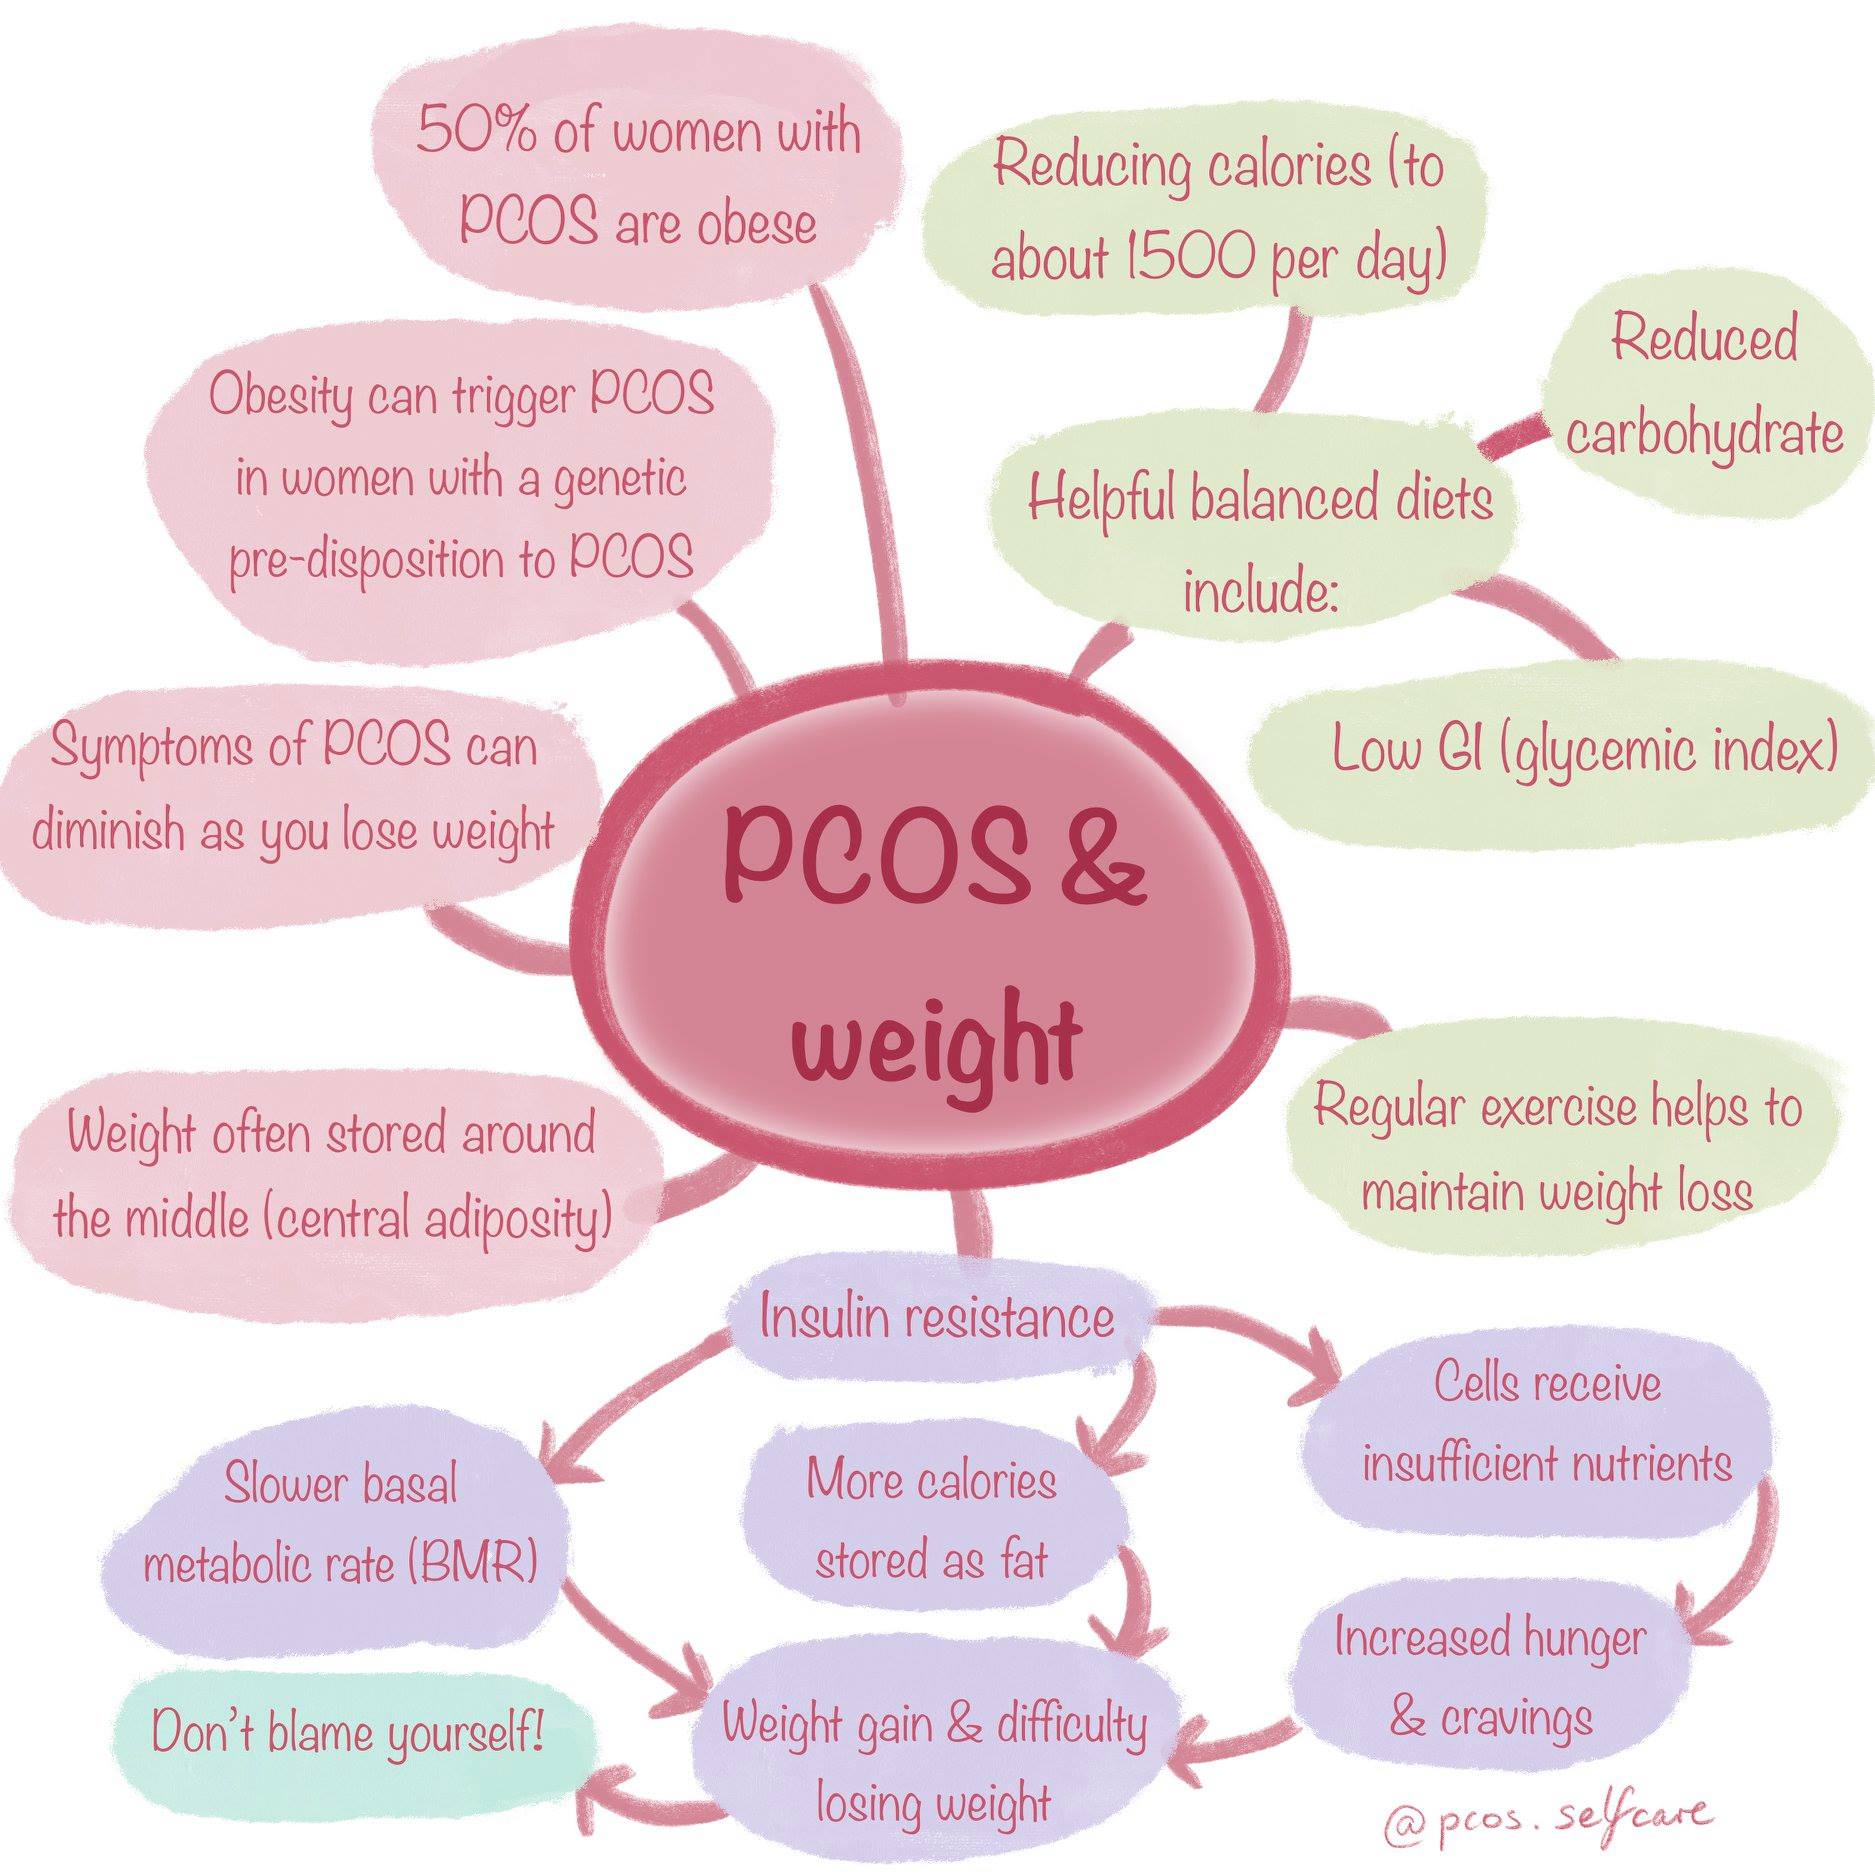 pcos weight